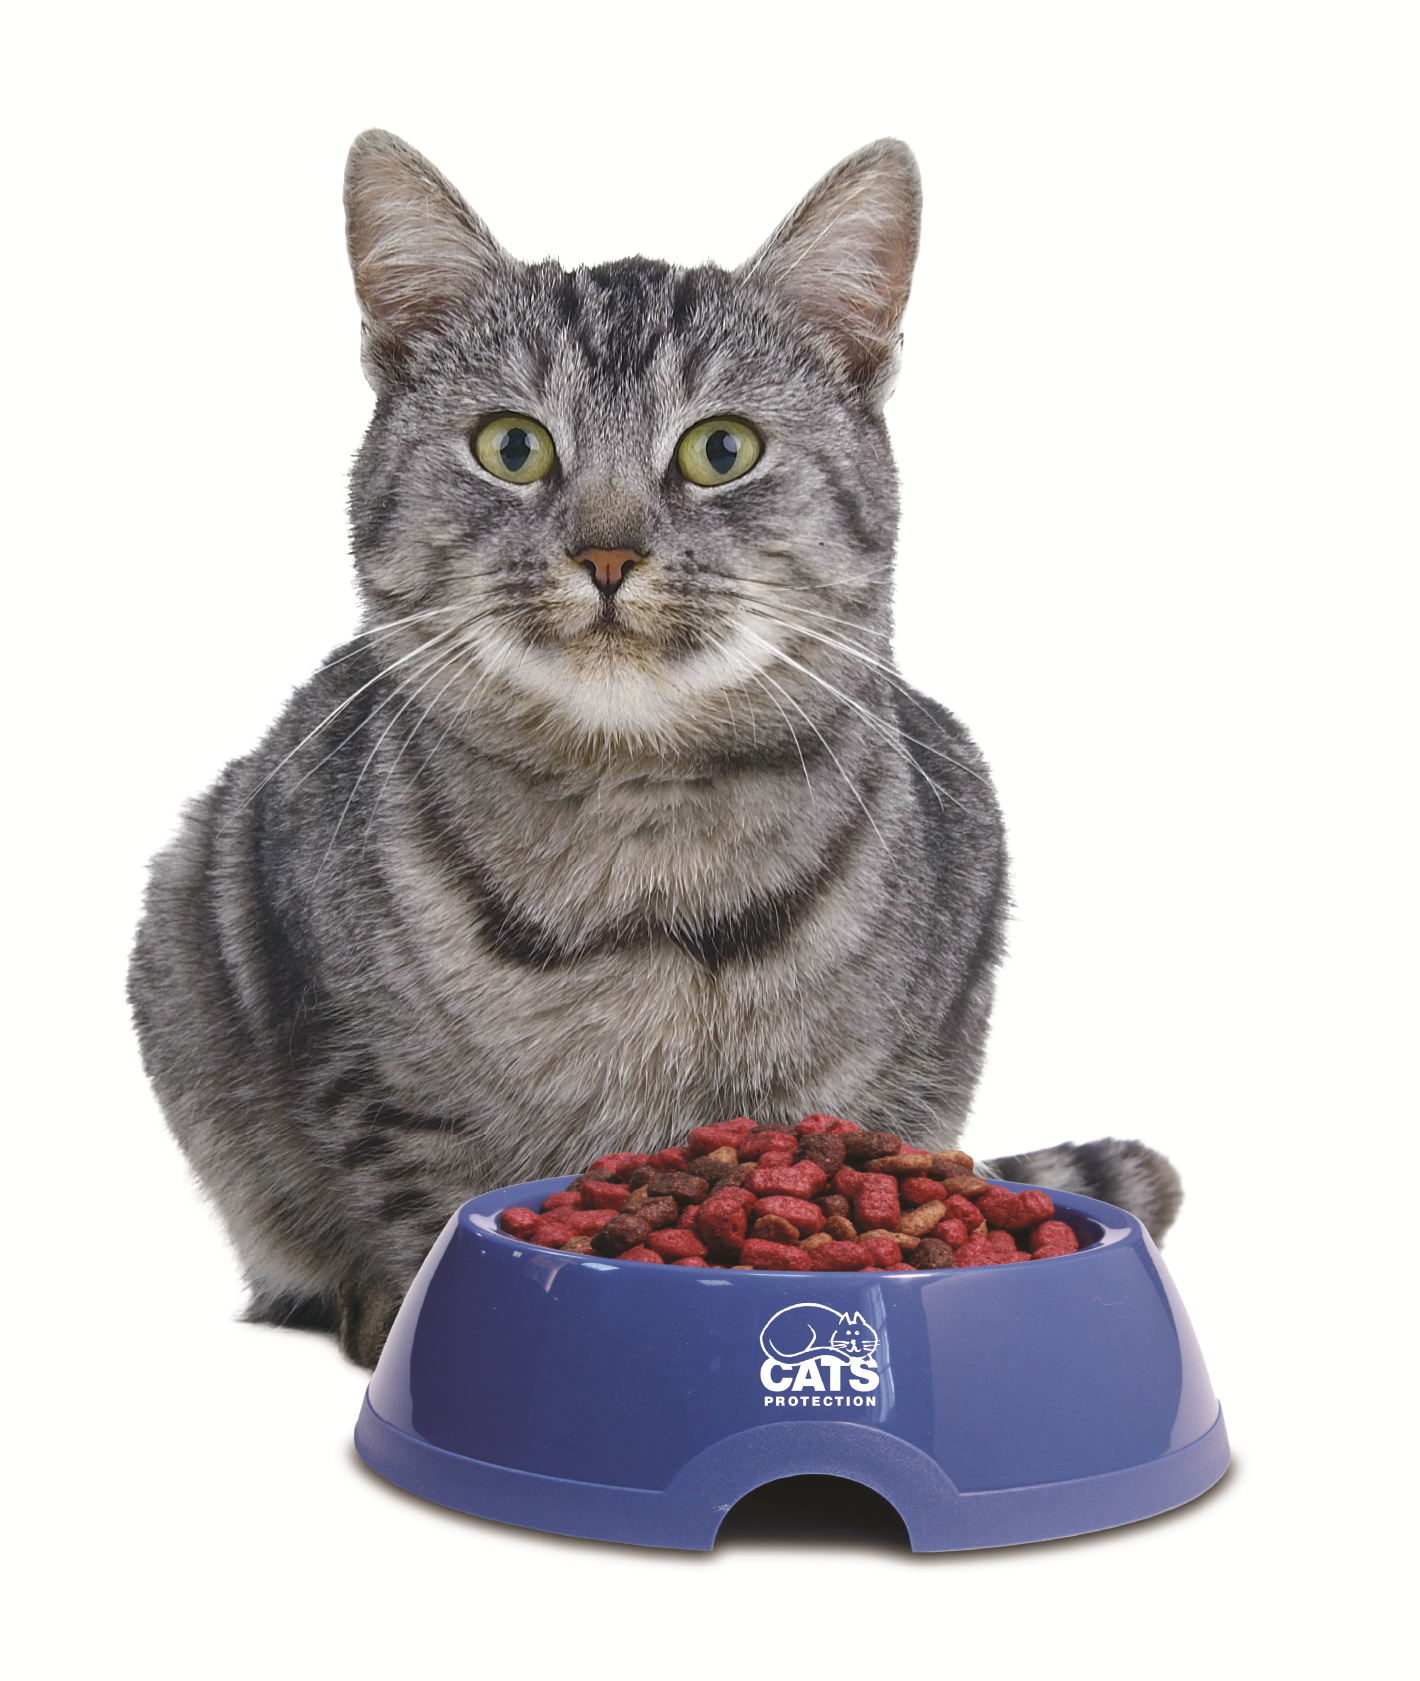 grey cat sitting in front of a blue food bowl full of cat biscuits